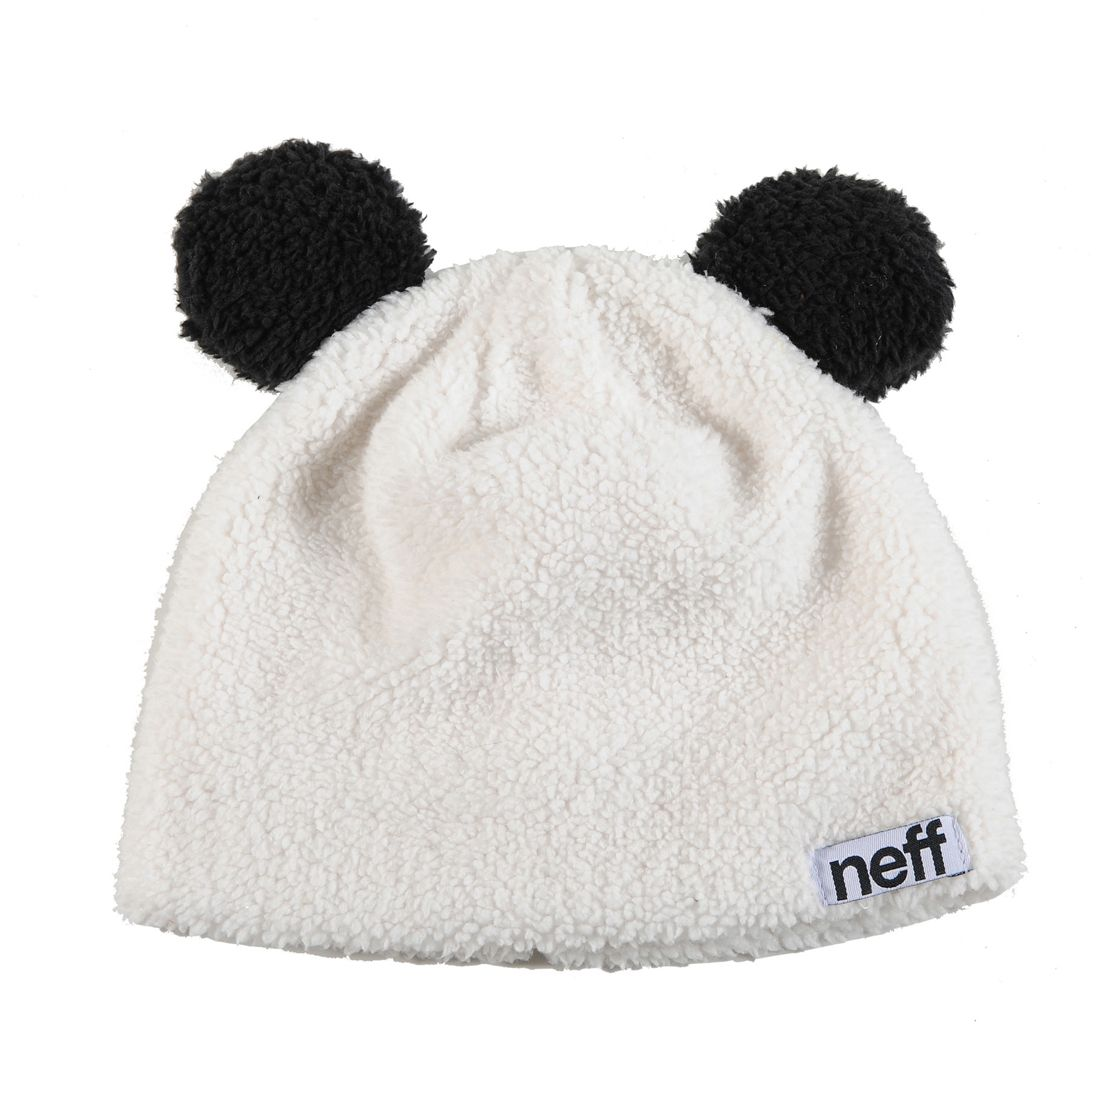 596bfb74518 Neff beanie - The GROWLER~ it looks like a panda